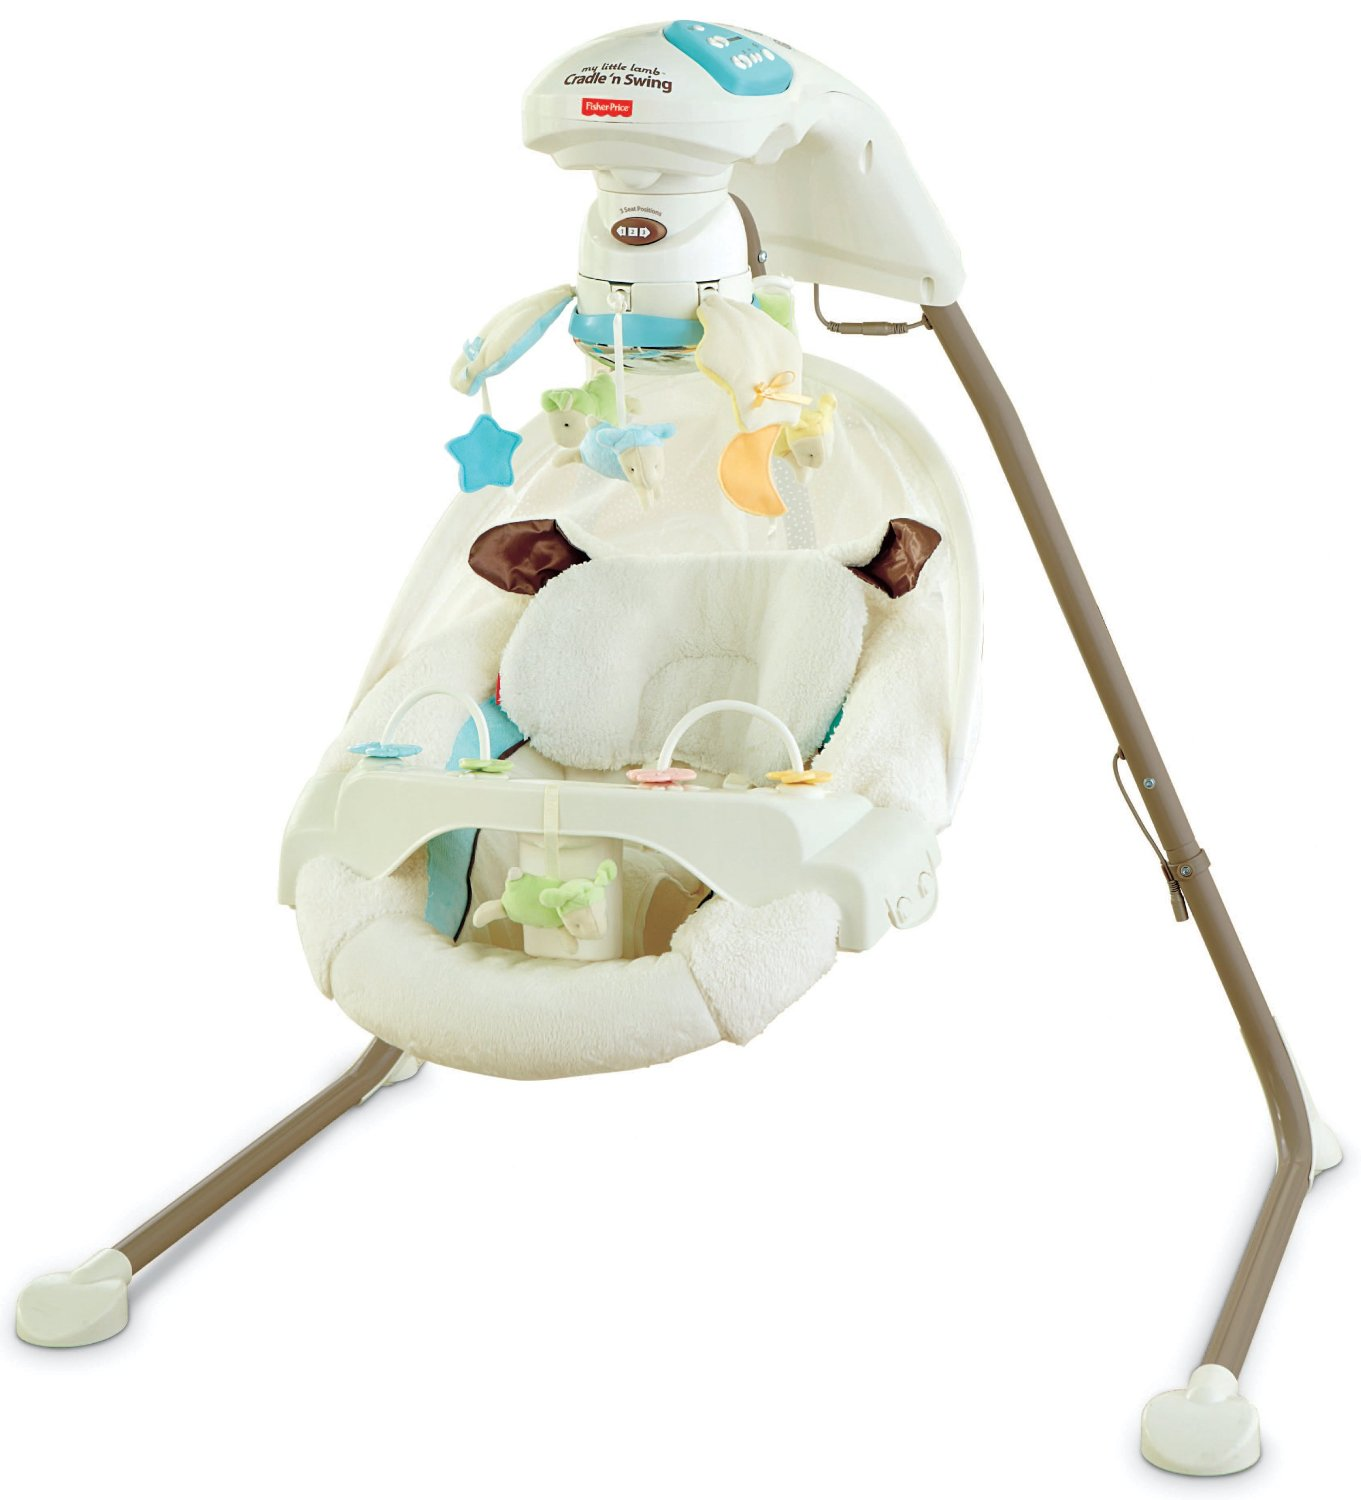 ... Fisher-Price Cradle 'n Swing with AC Adapter - My Little Lamb (Y5708 ...